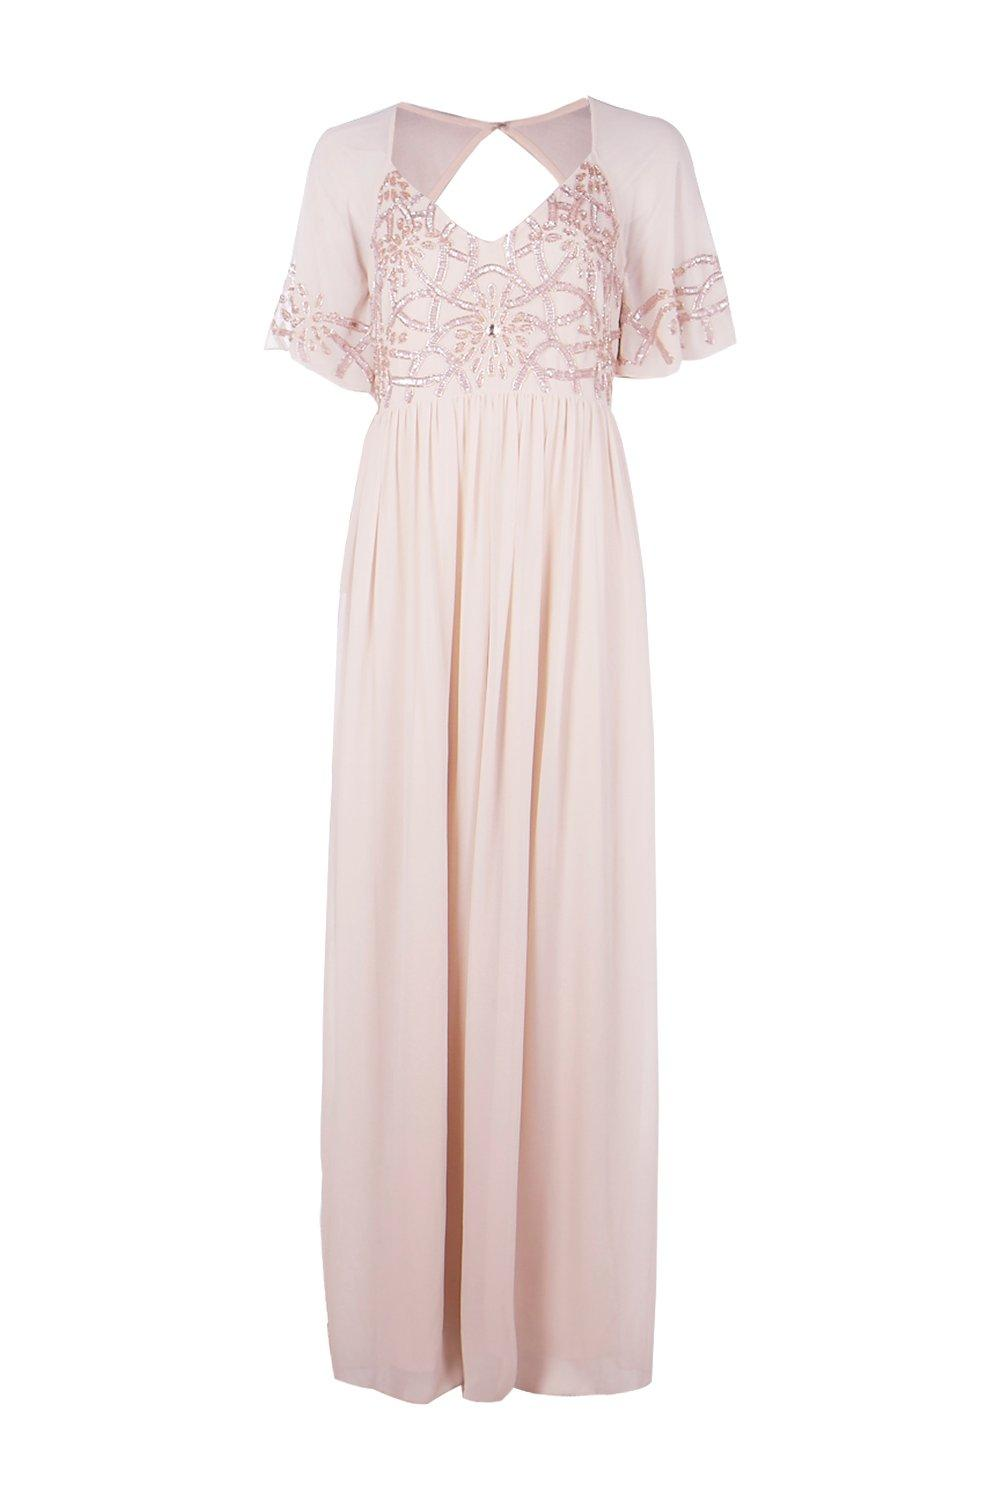 Boohoo Womens Boutique Michi Embellished Maxi Dress by Ebay Seller